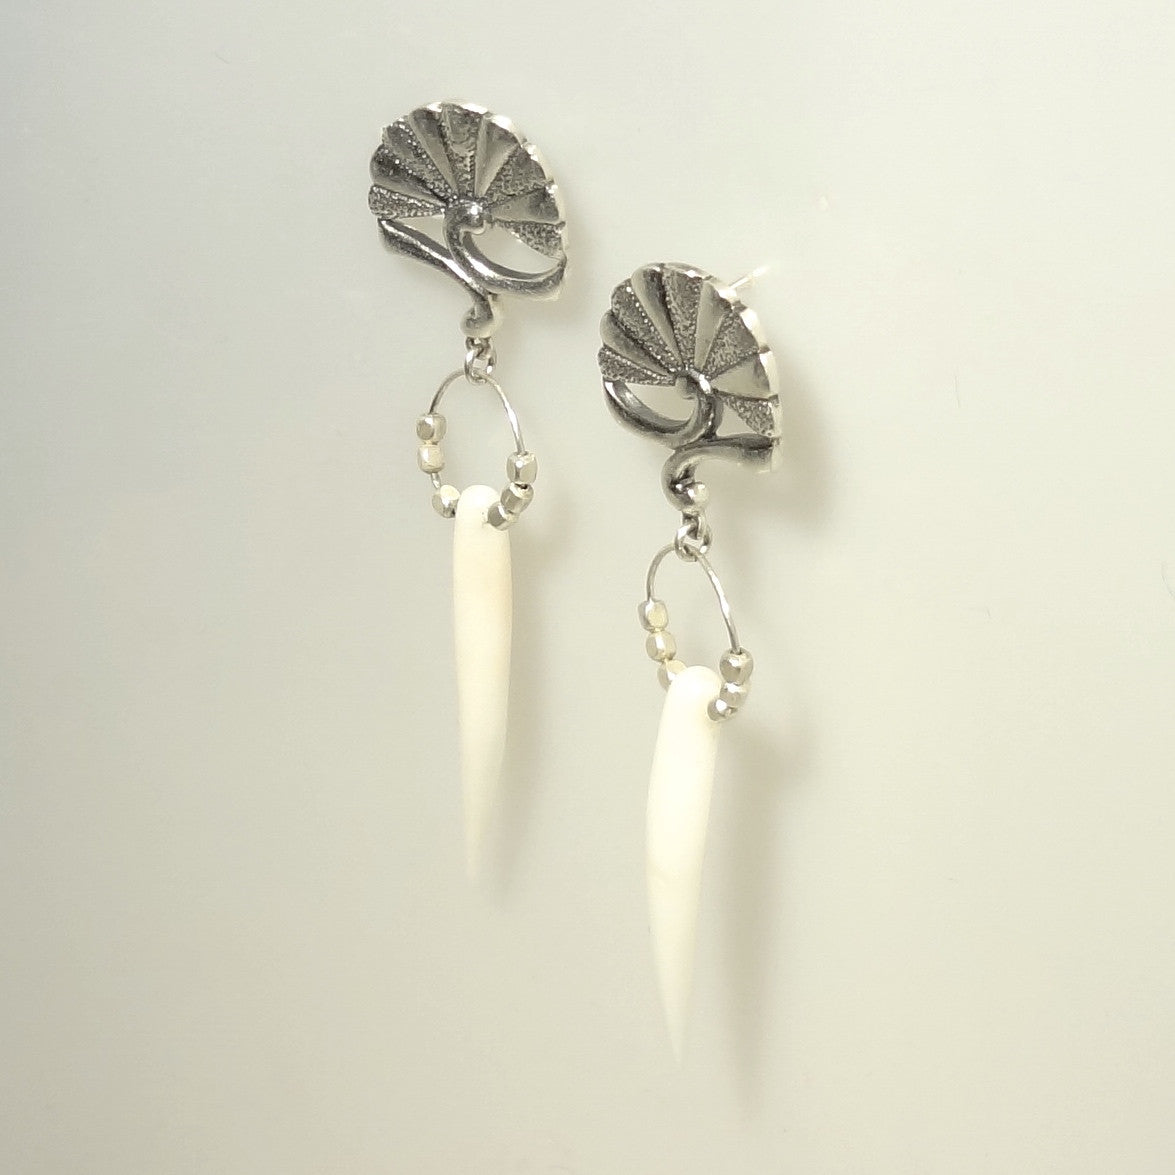 Coral Spike Earring - Handmade in Sterling Silver – All Animal Jewelry